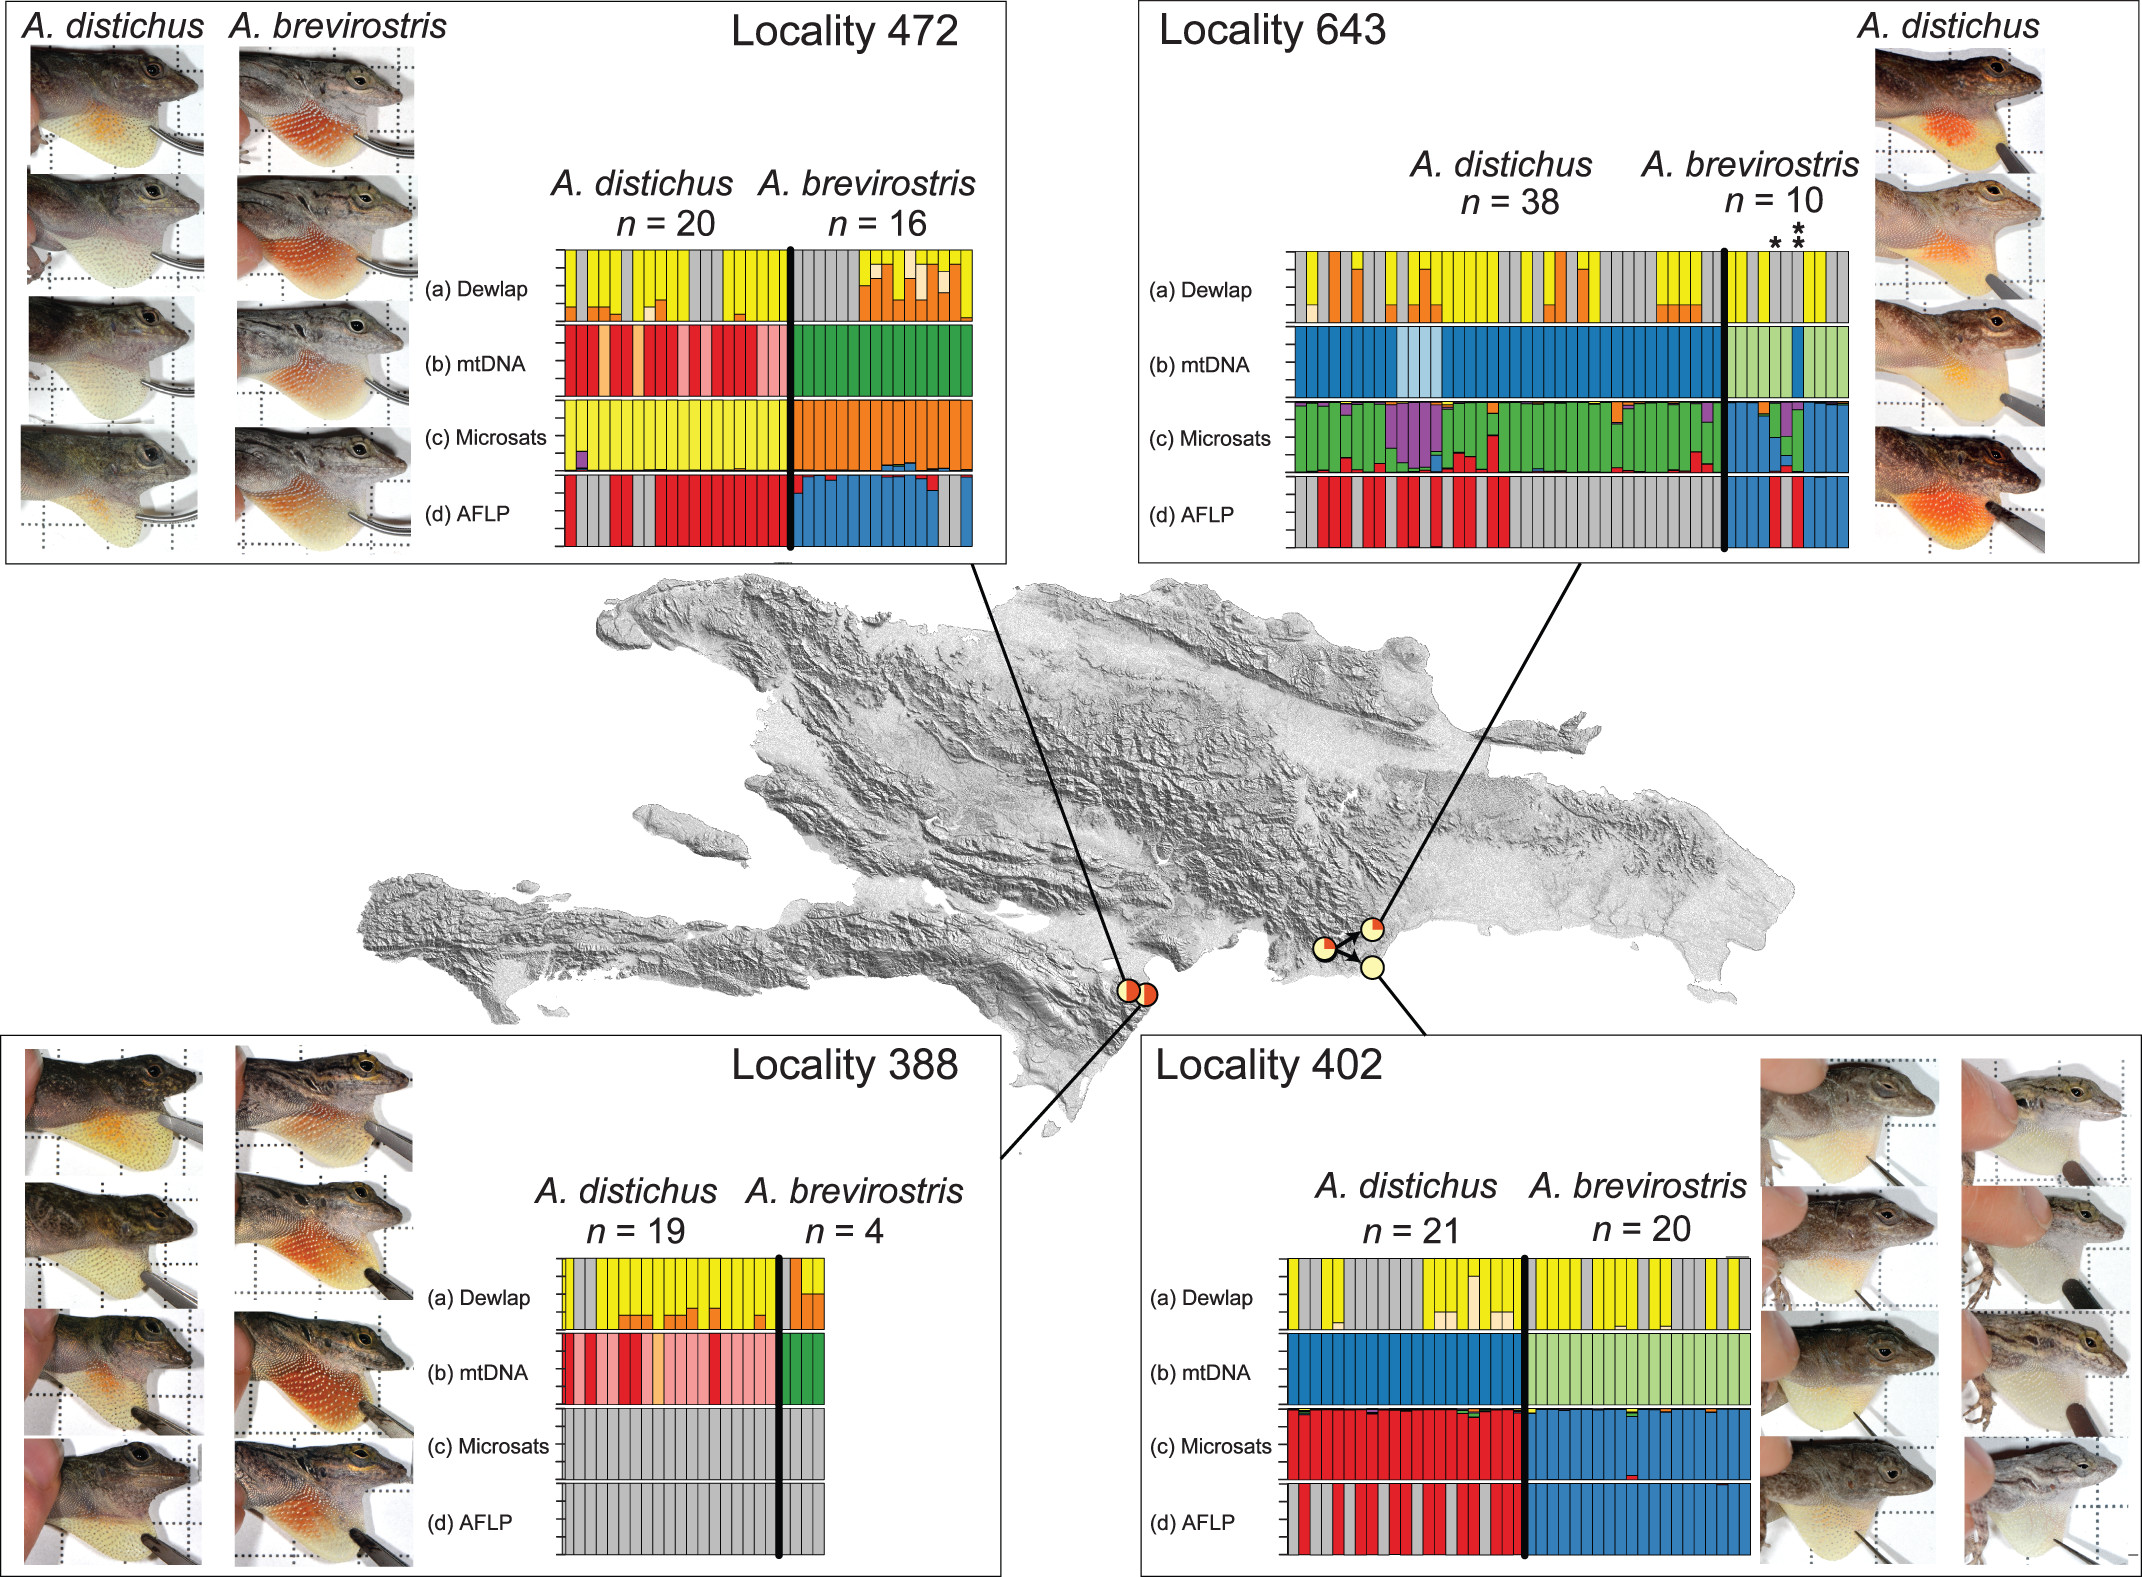 Dewlap and genetic differences between co-occurring Anolis distichus and A. brevirostris